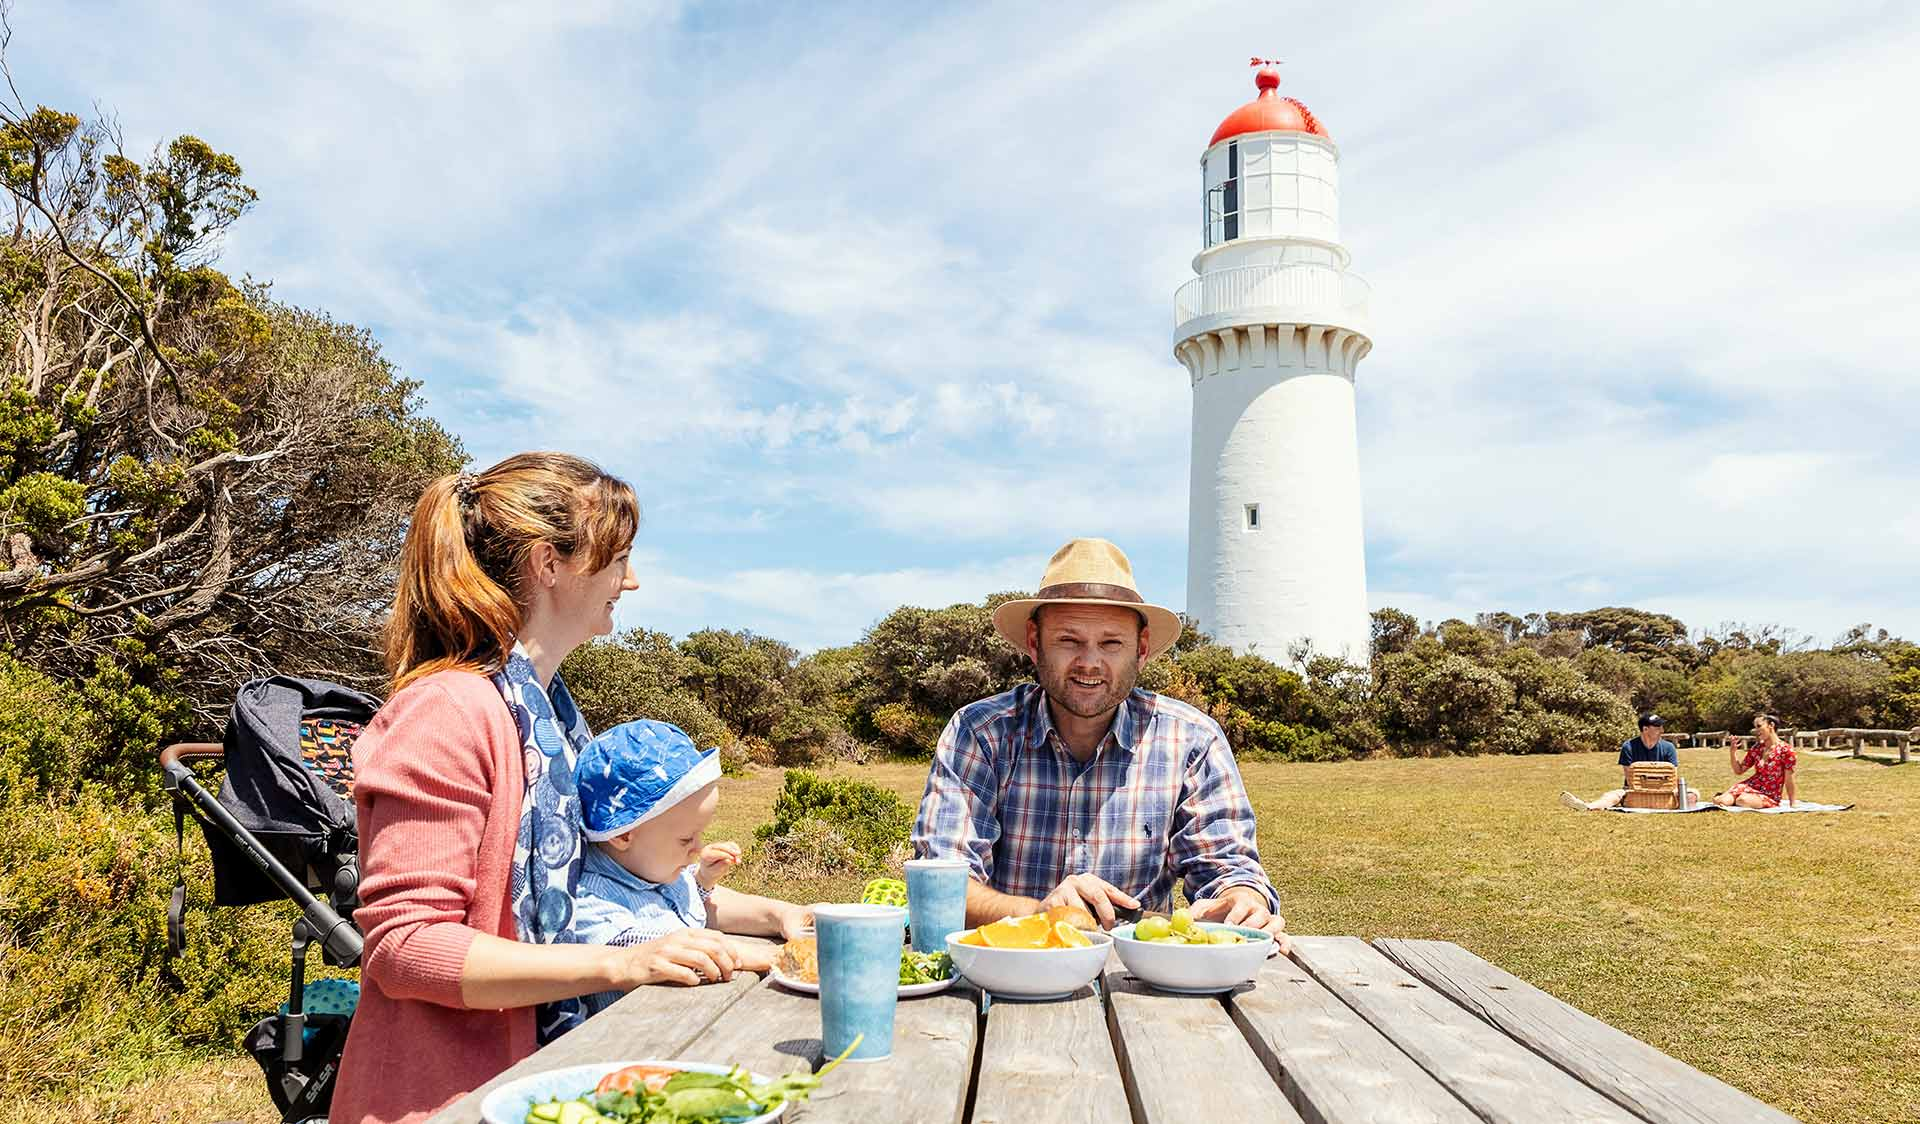 A young family eating at a picnic table at the Cape Schanck Lighthouse